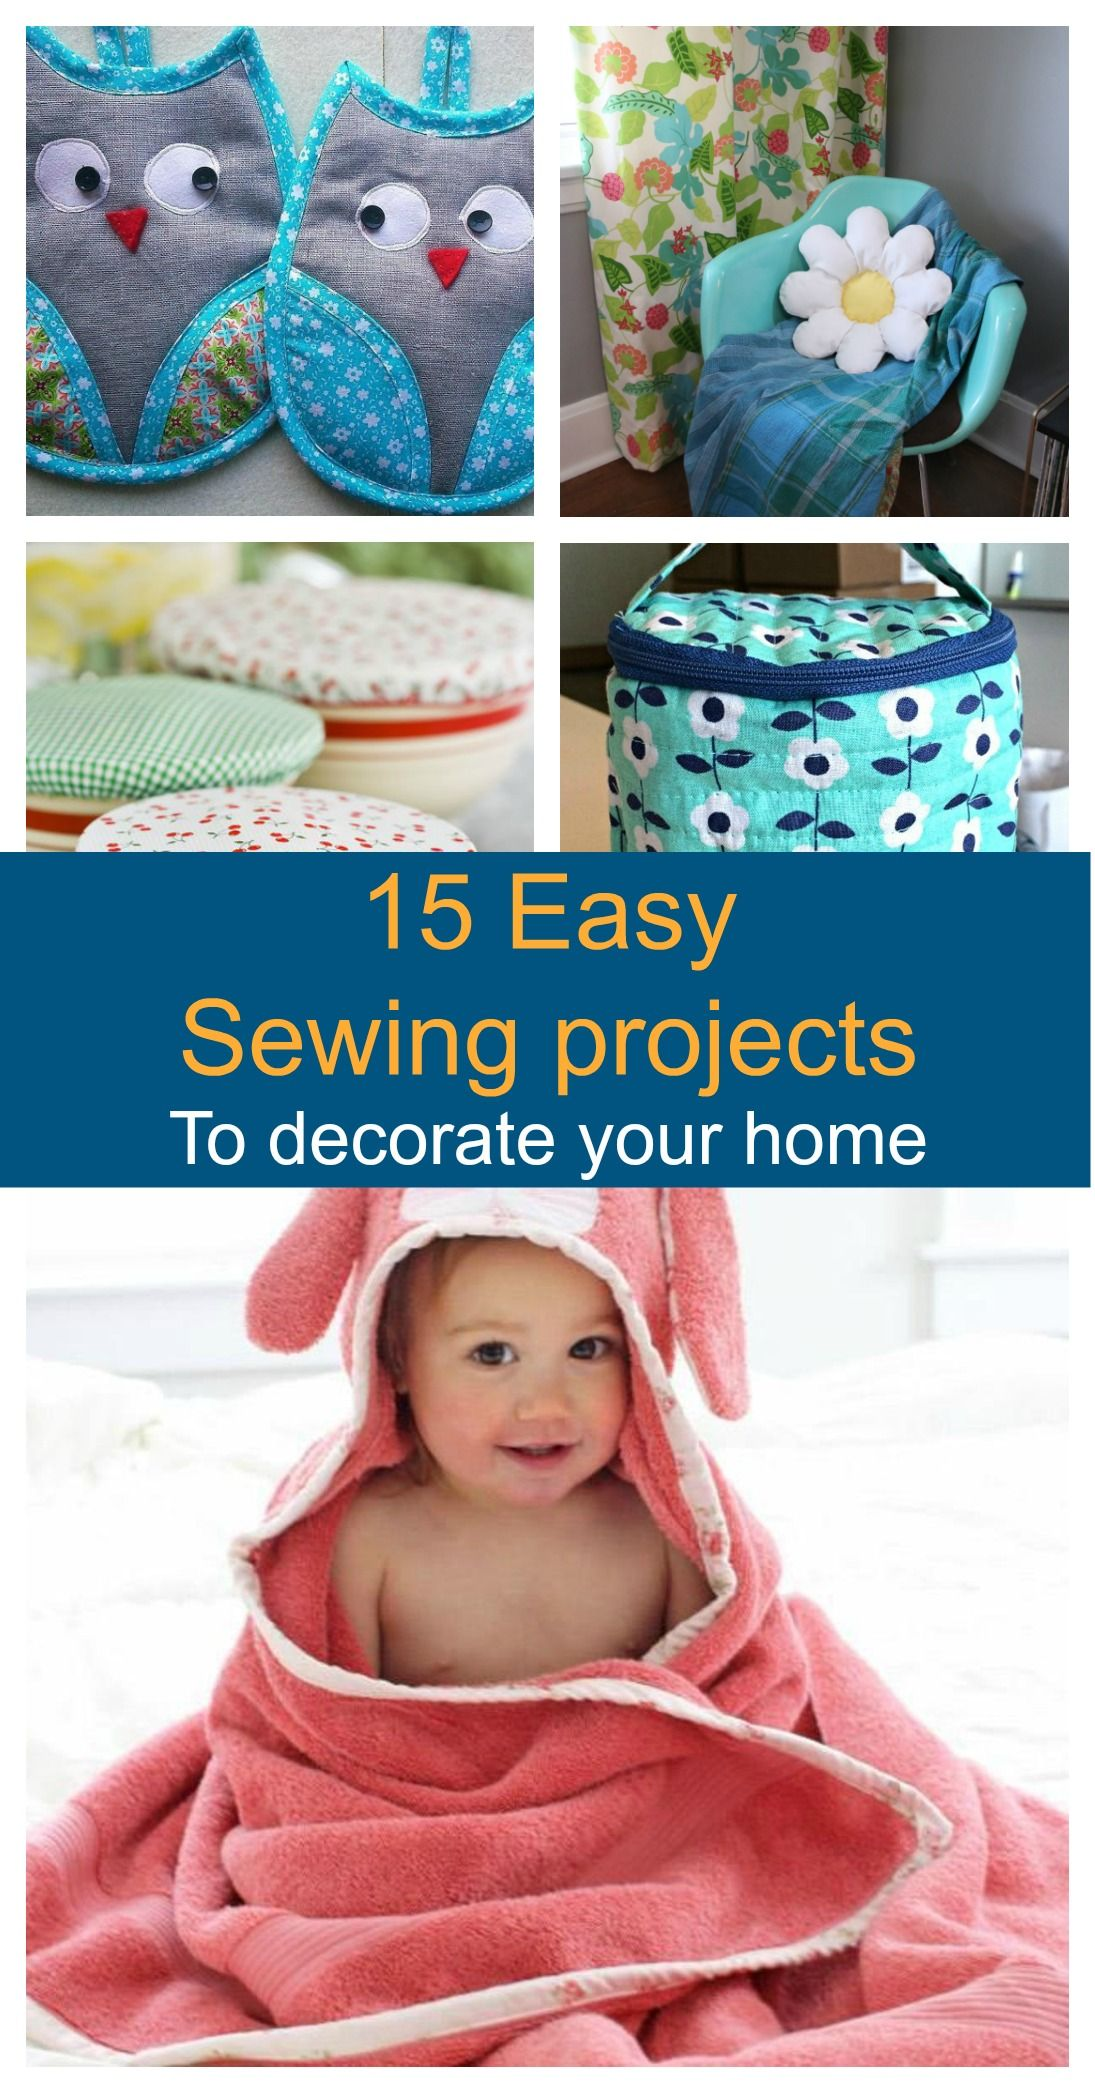 FREE PATTERN ALERT: 15 Easy Sewing projects for Home | Nähen